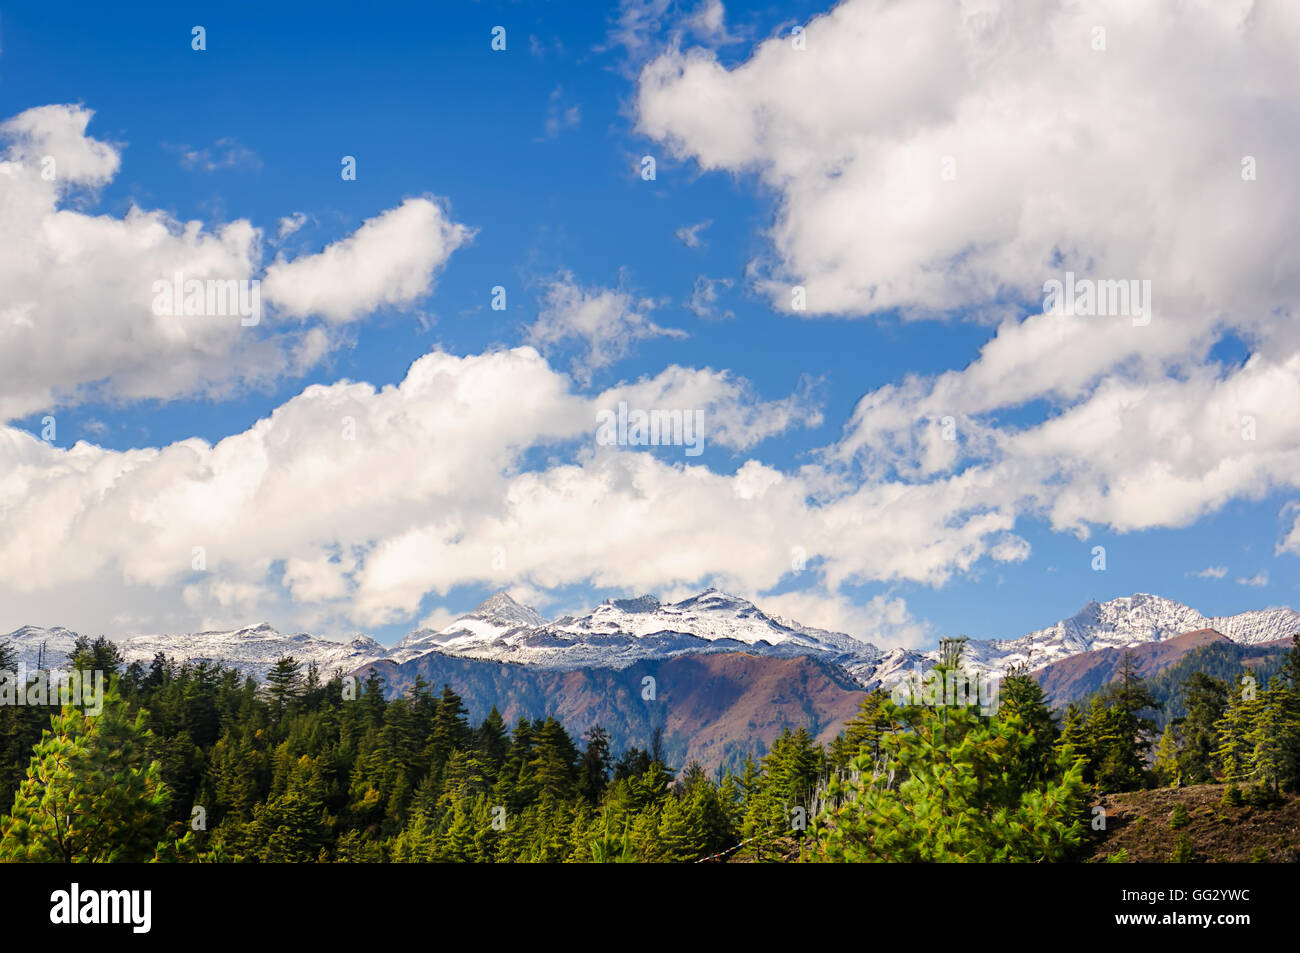 Landscape of Bhutan, Chele La Pass, snow capped Mountains and sky, copy space - Stock Image